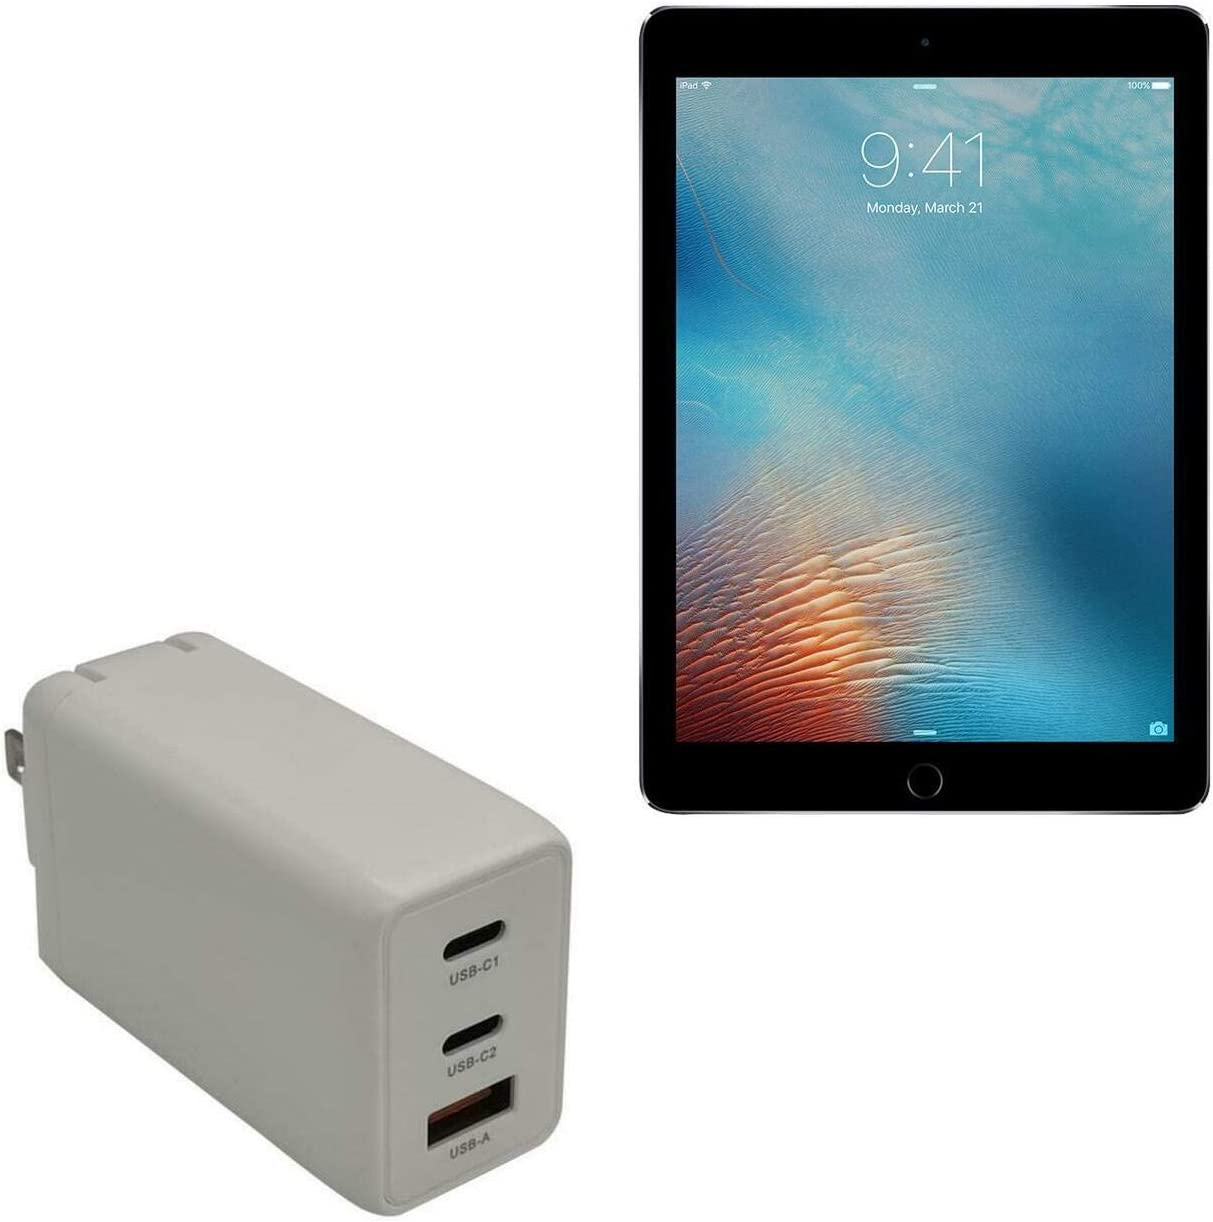 Charger for iPad Pro 9.7 (2016) (Charger by BoxWave) - PD GaNCharge Wall Charger (65W), 65W Tiny PD GAN Type-C and Type-A Wall Charger for iPad Pro 9.7 (2016), Apple iPad Pro 9.7 (2016) - Winter White